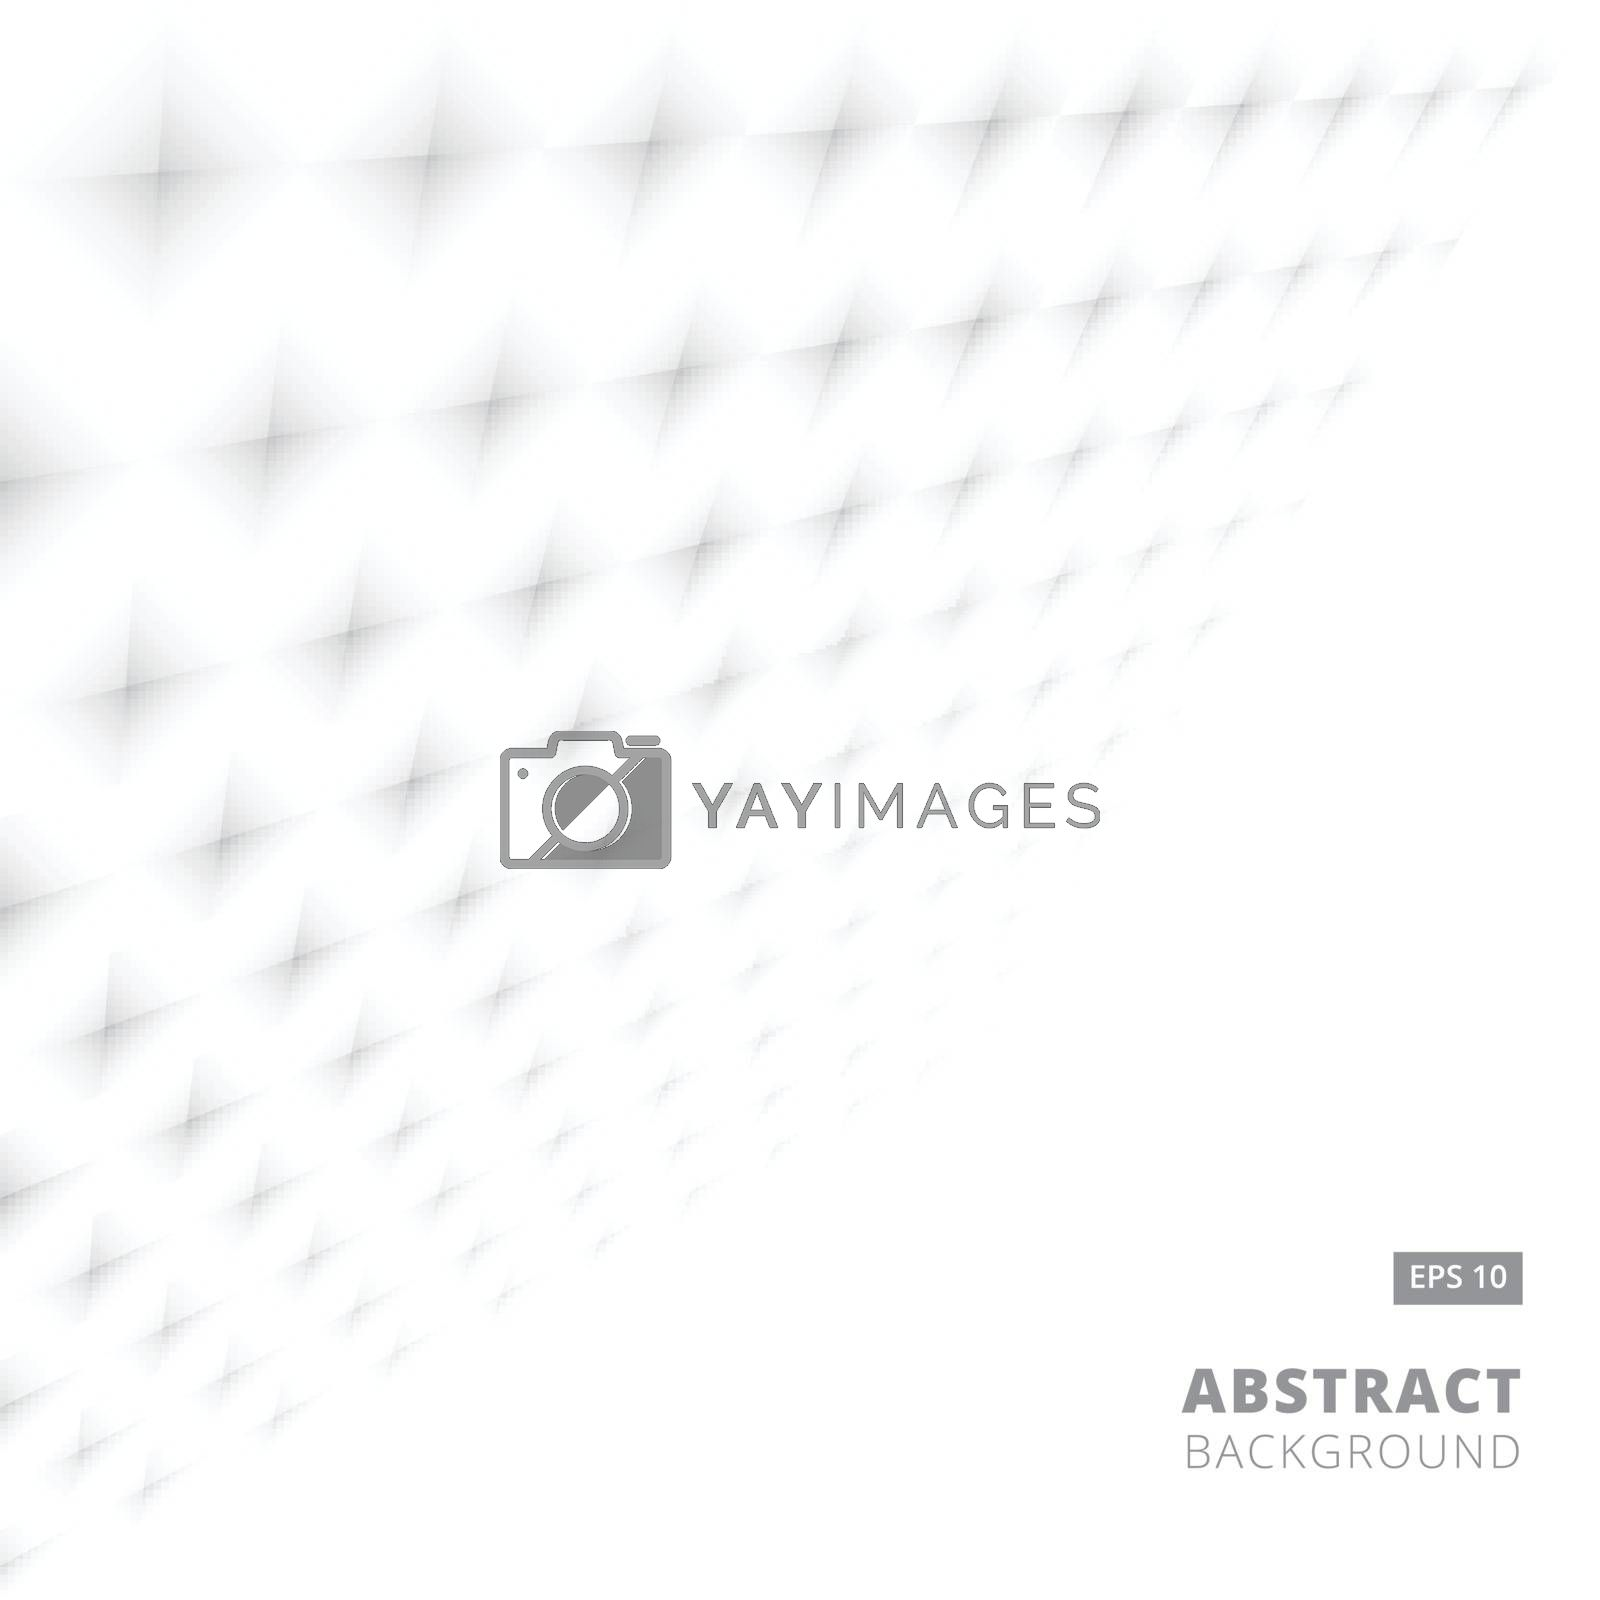 Abstract stripe background white geometric shapes perspective pattern. Vector illustration